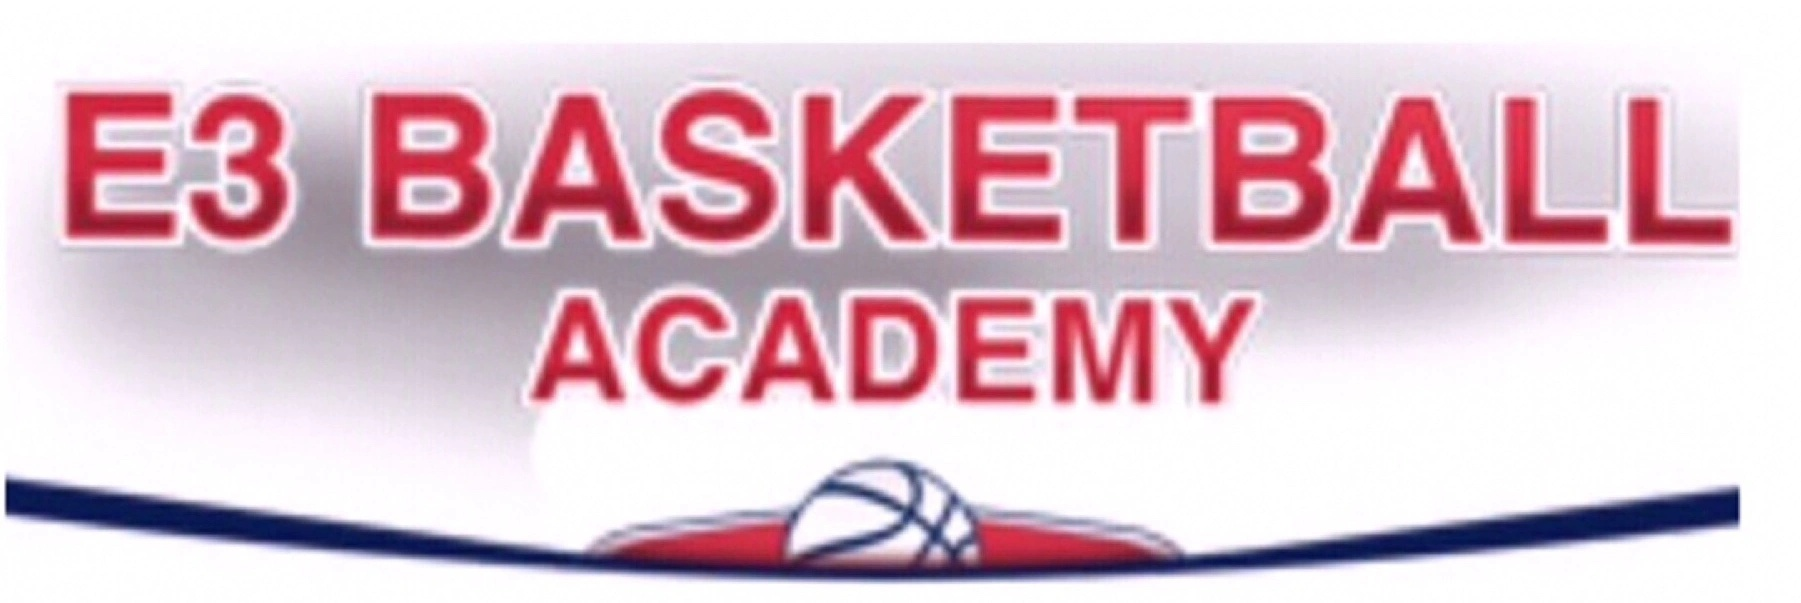 e3 Basketball Academy